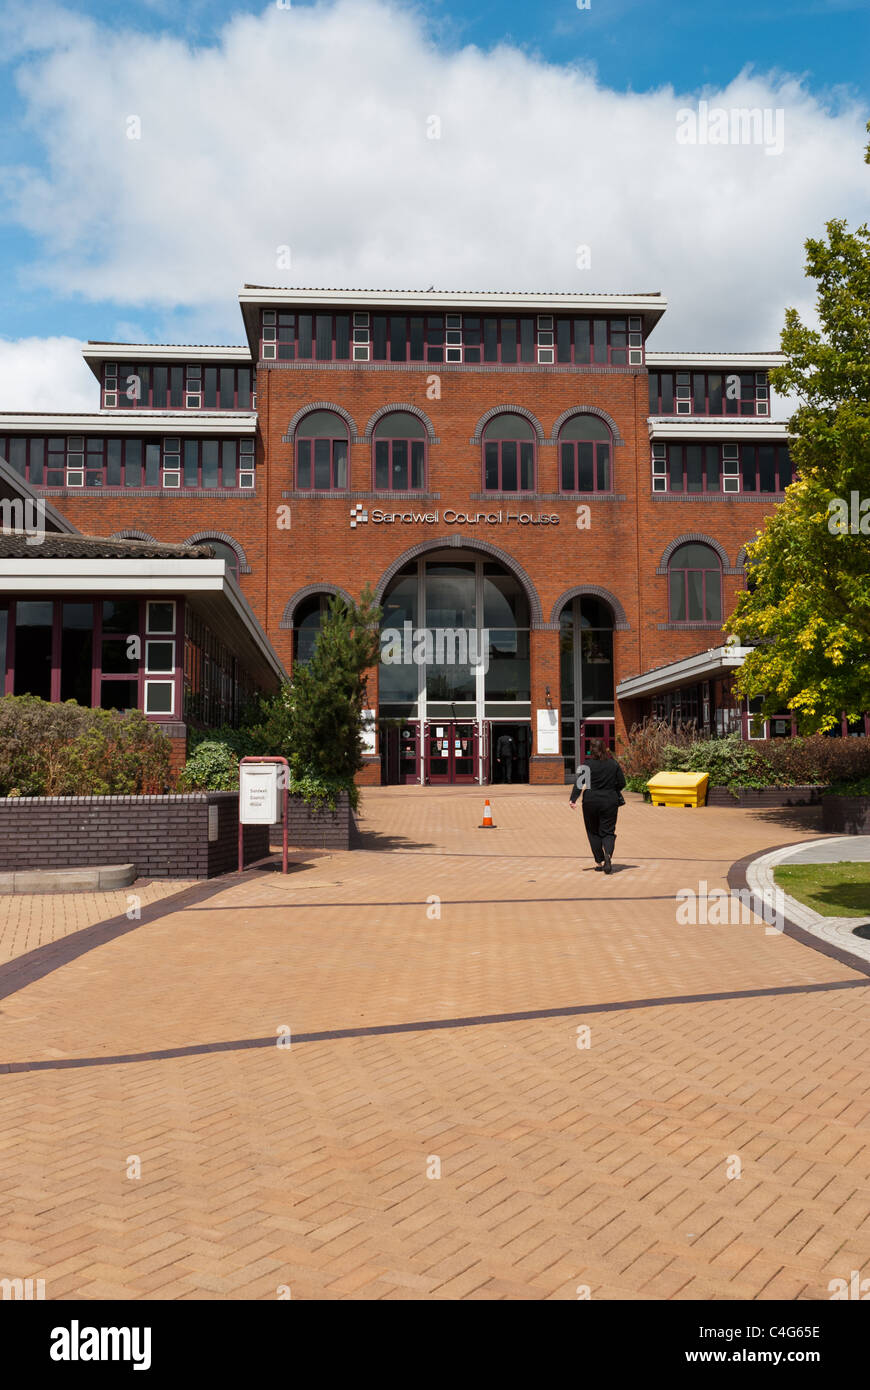 Sandwell Council House, Oldbury, West Midlands - Stock Image